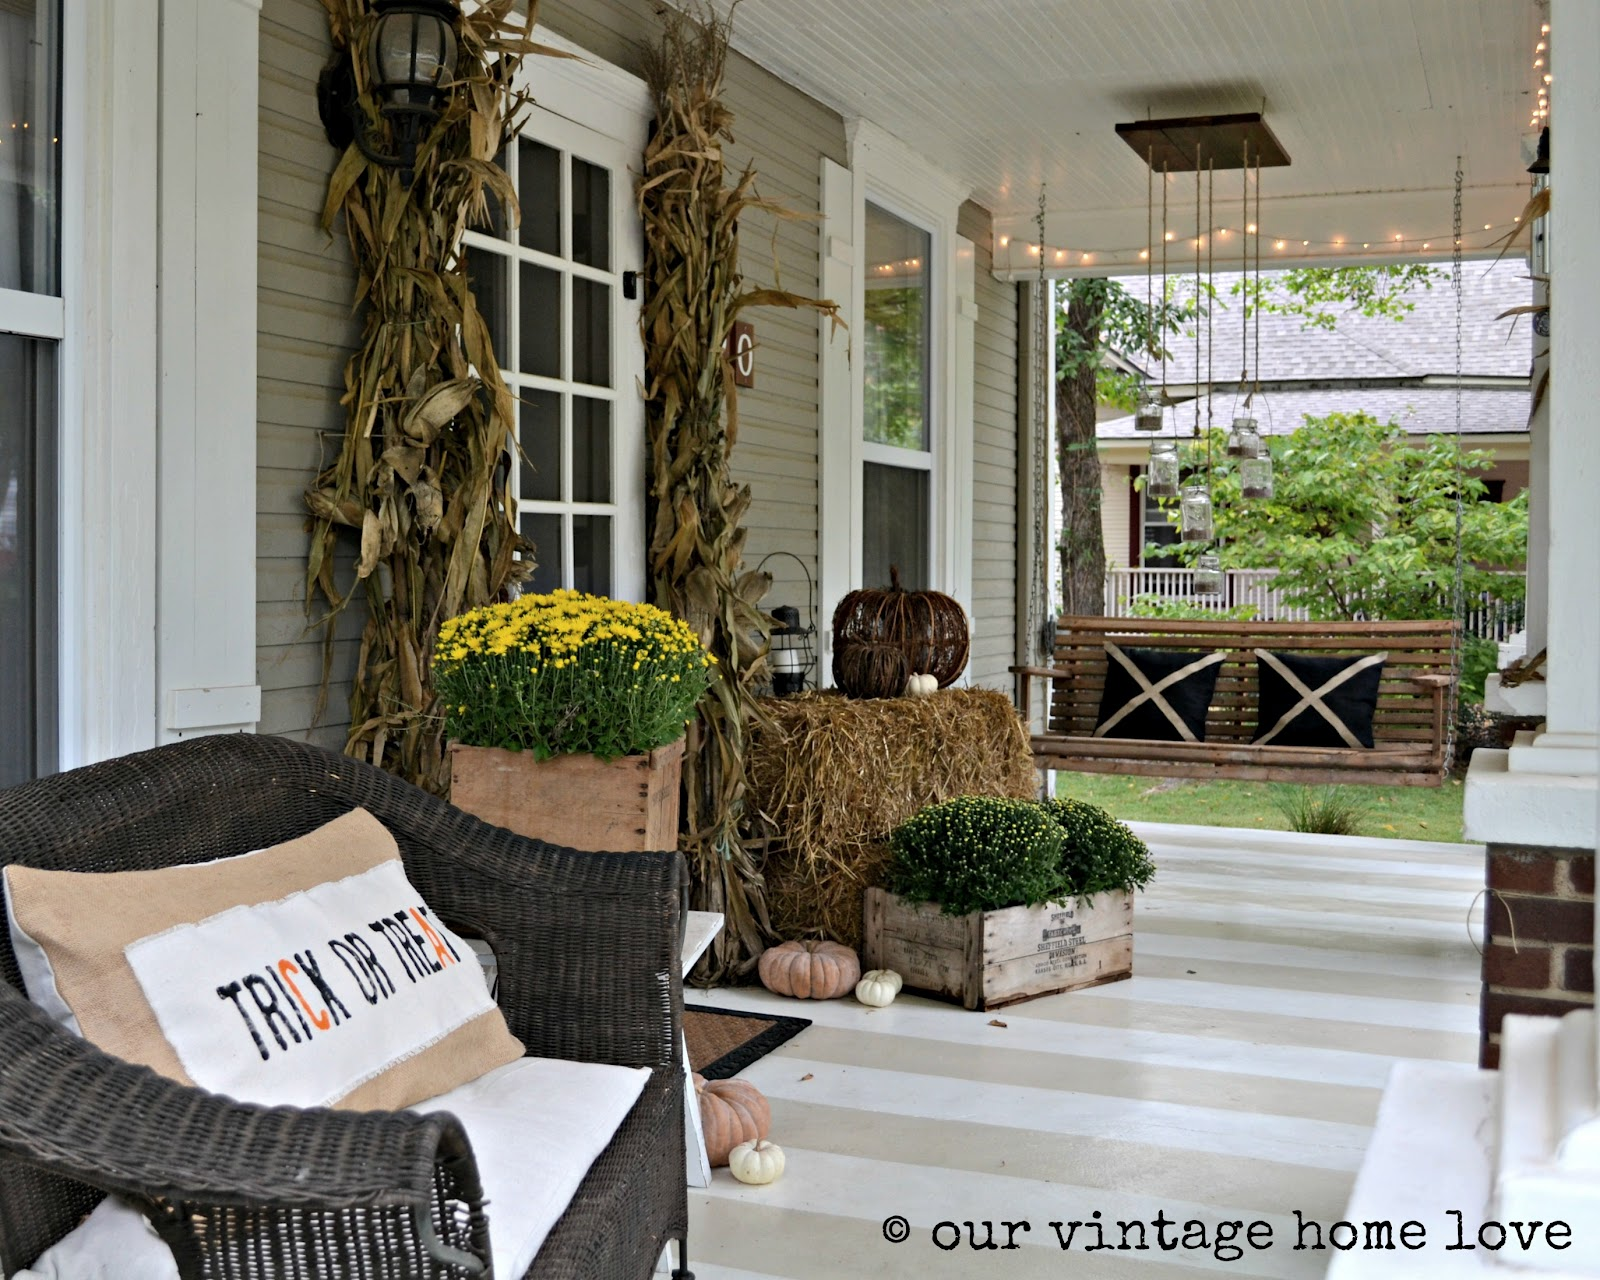 Autumn Porch Ideas & vintage home love: Autumn Porch Ideas